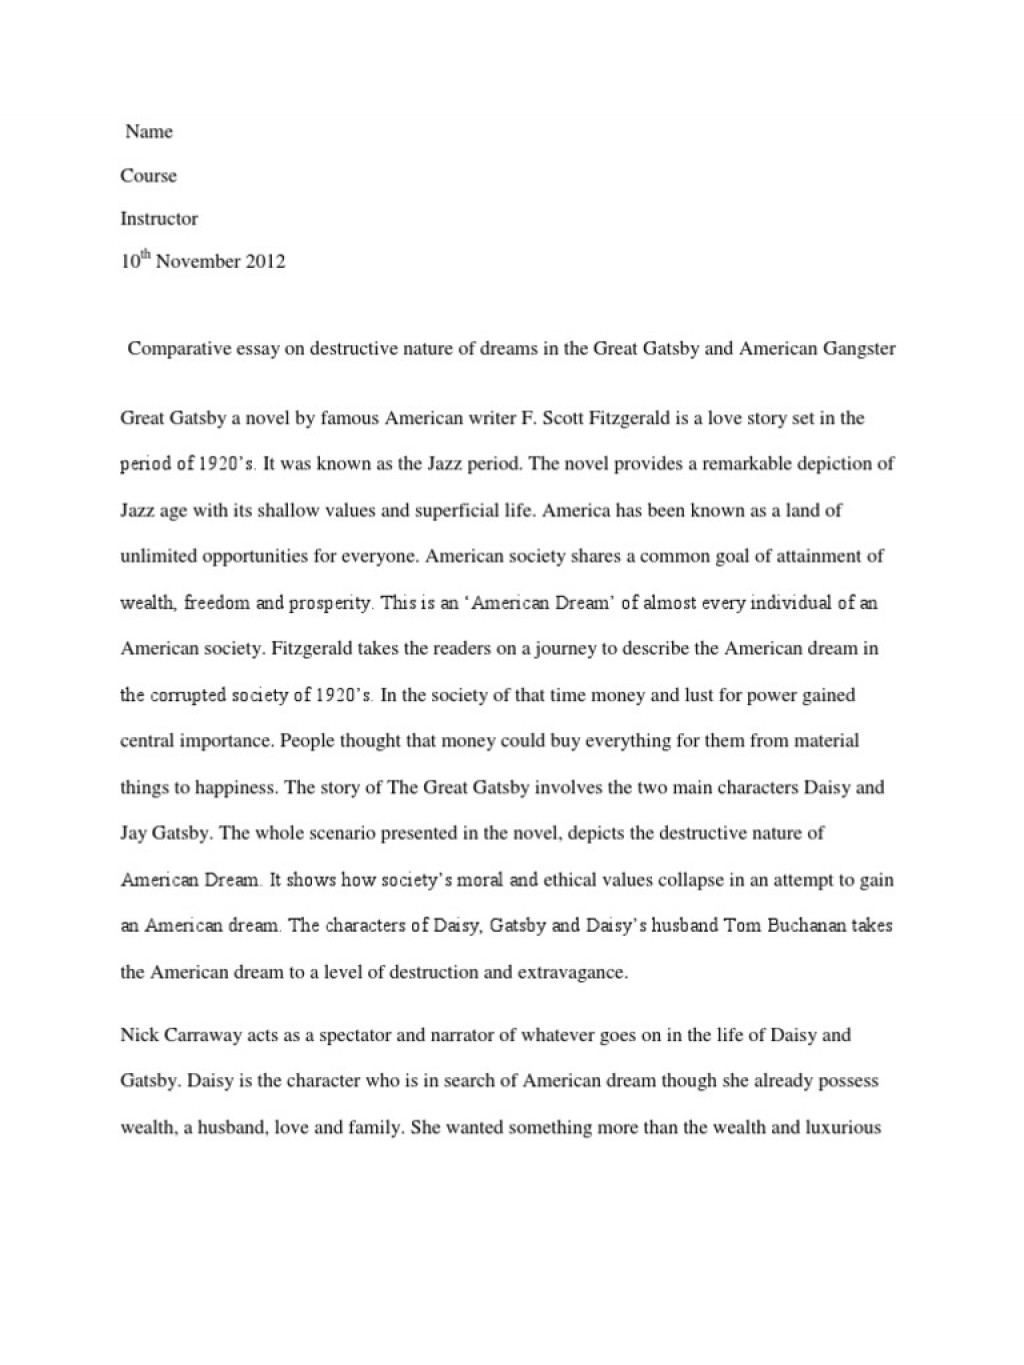 008 Comparative Essay On Destructive Nature Ofs  5884869ab6d87f259b8b49e2 Example American Unique Dream Conclusion Thesis Great GatsbyLarge